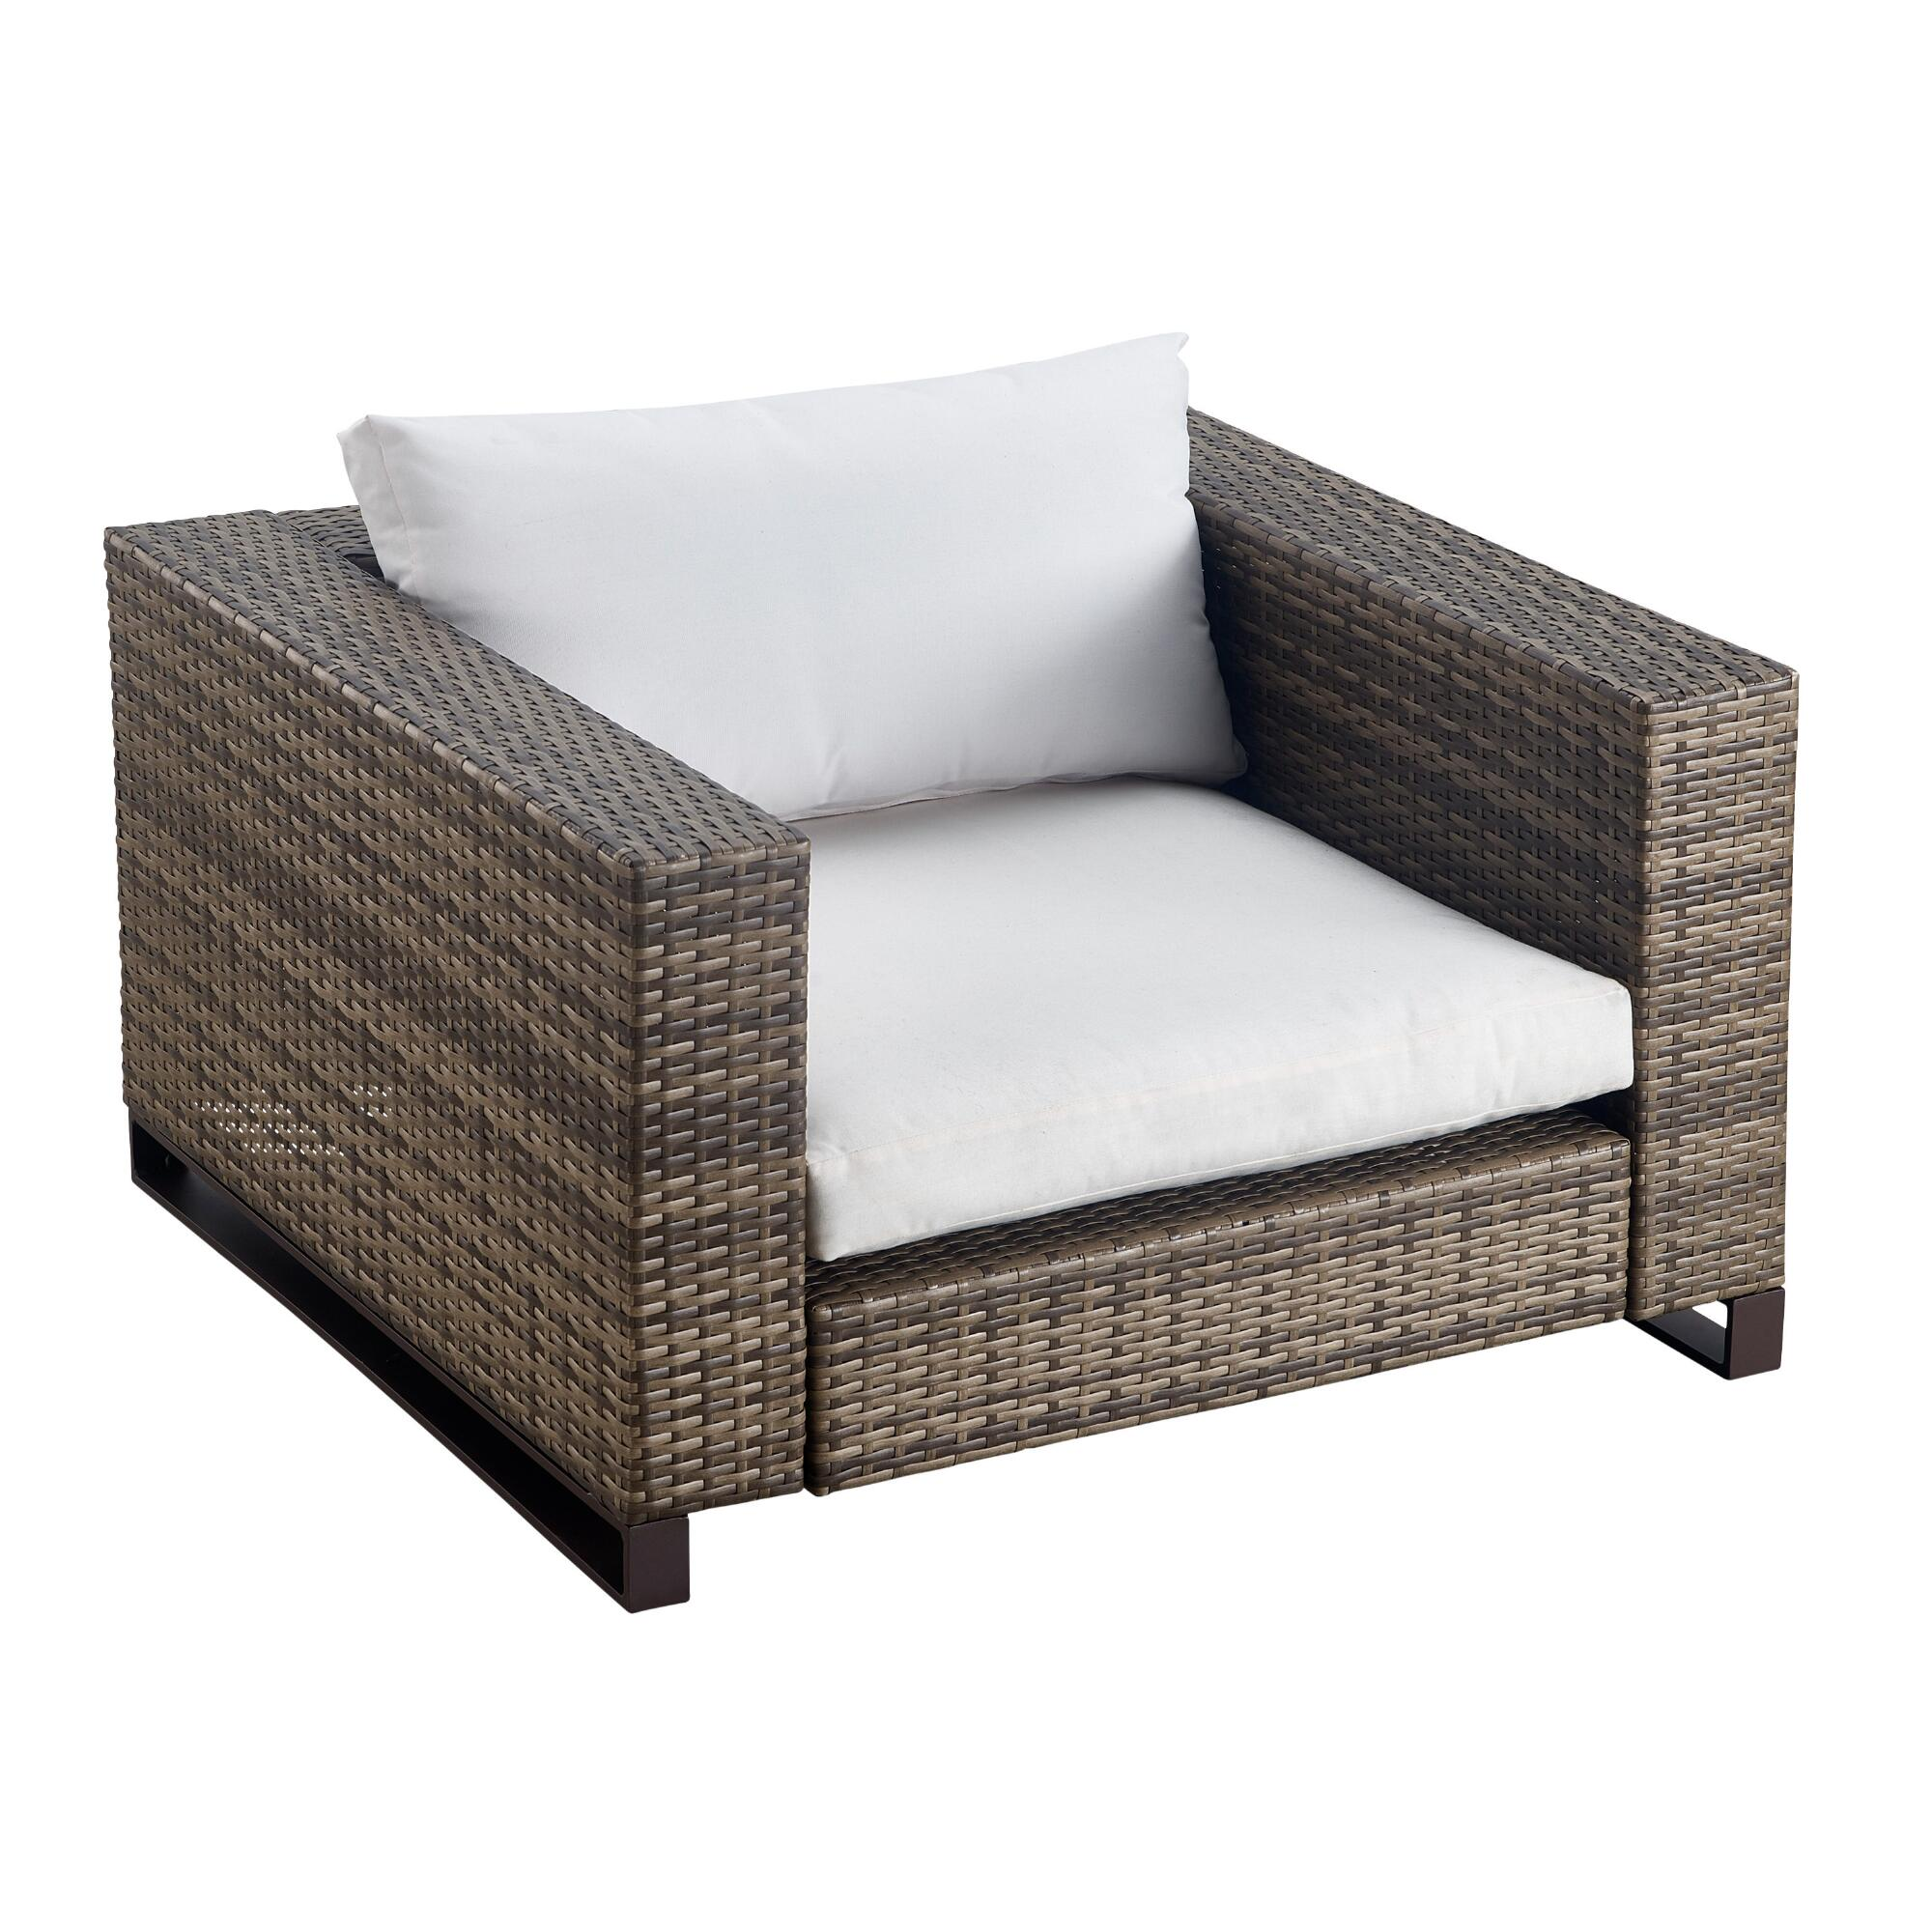 Brown All Weather Wicker Nasim Outdoor Patio Occasional Armchair by World Market